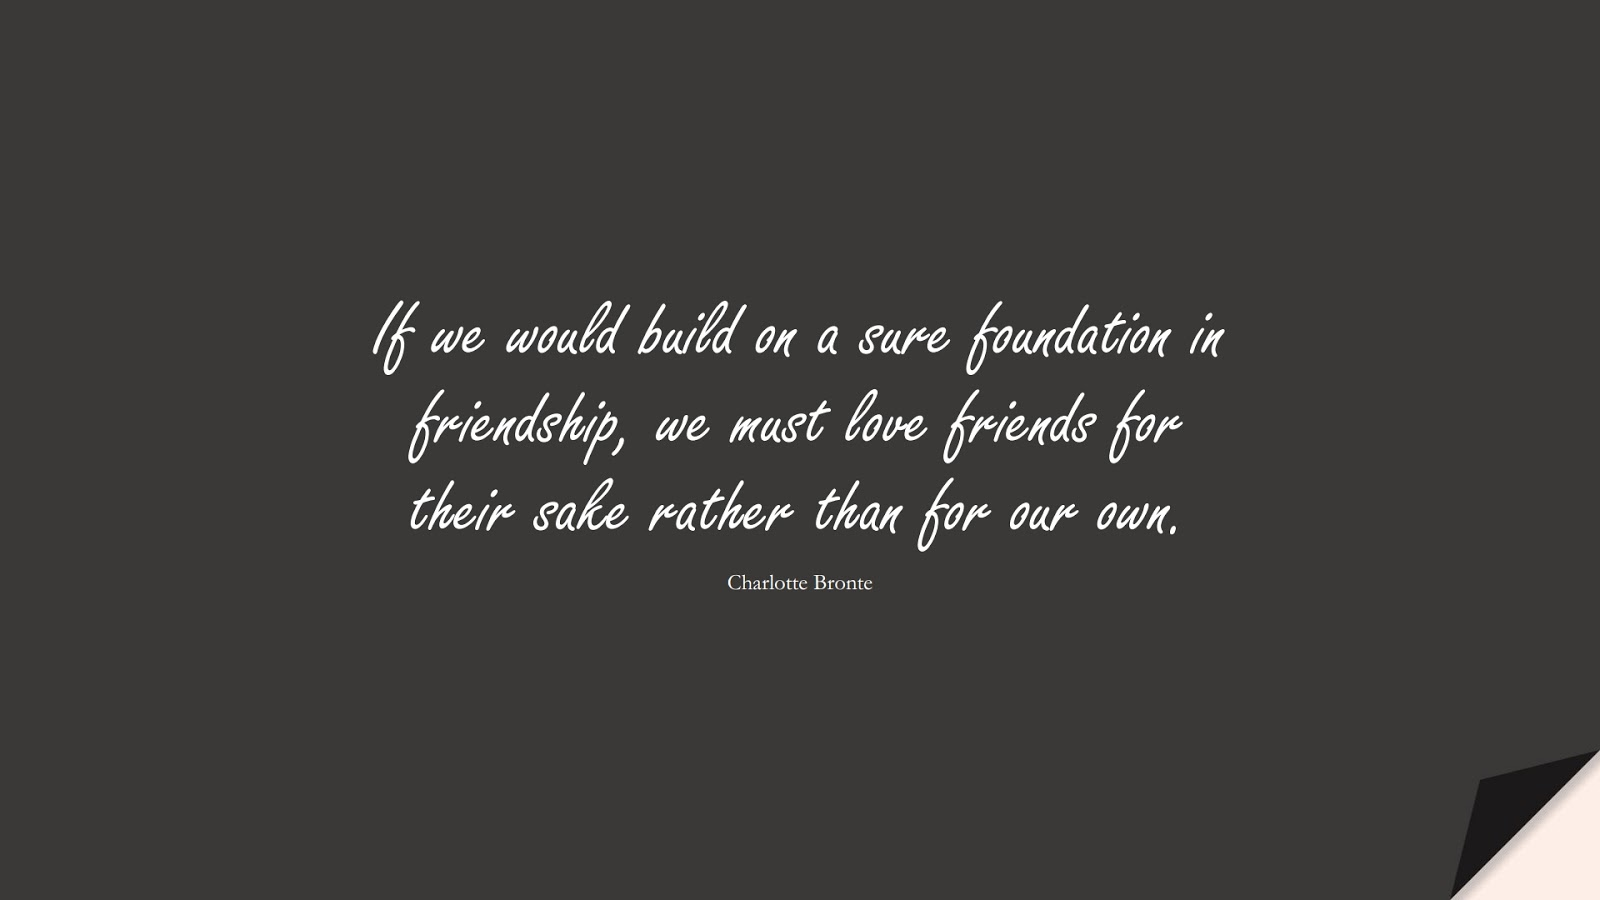 If we would build on a sure foundation in friendship, we must love friends for their sake rather than for our own. (Charlotte Bronte);  #RelationshipQuotes